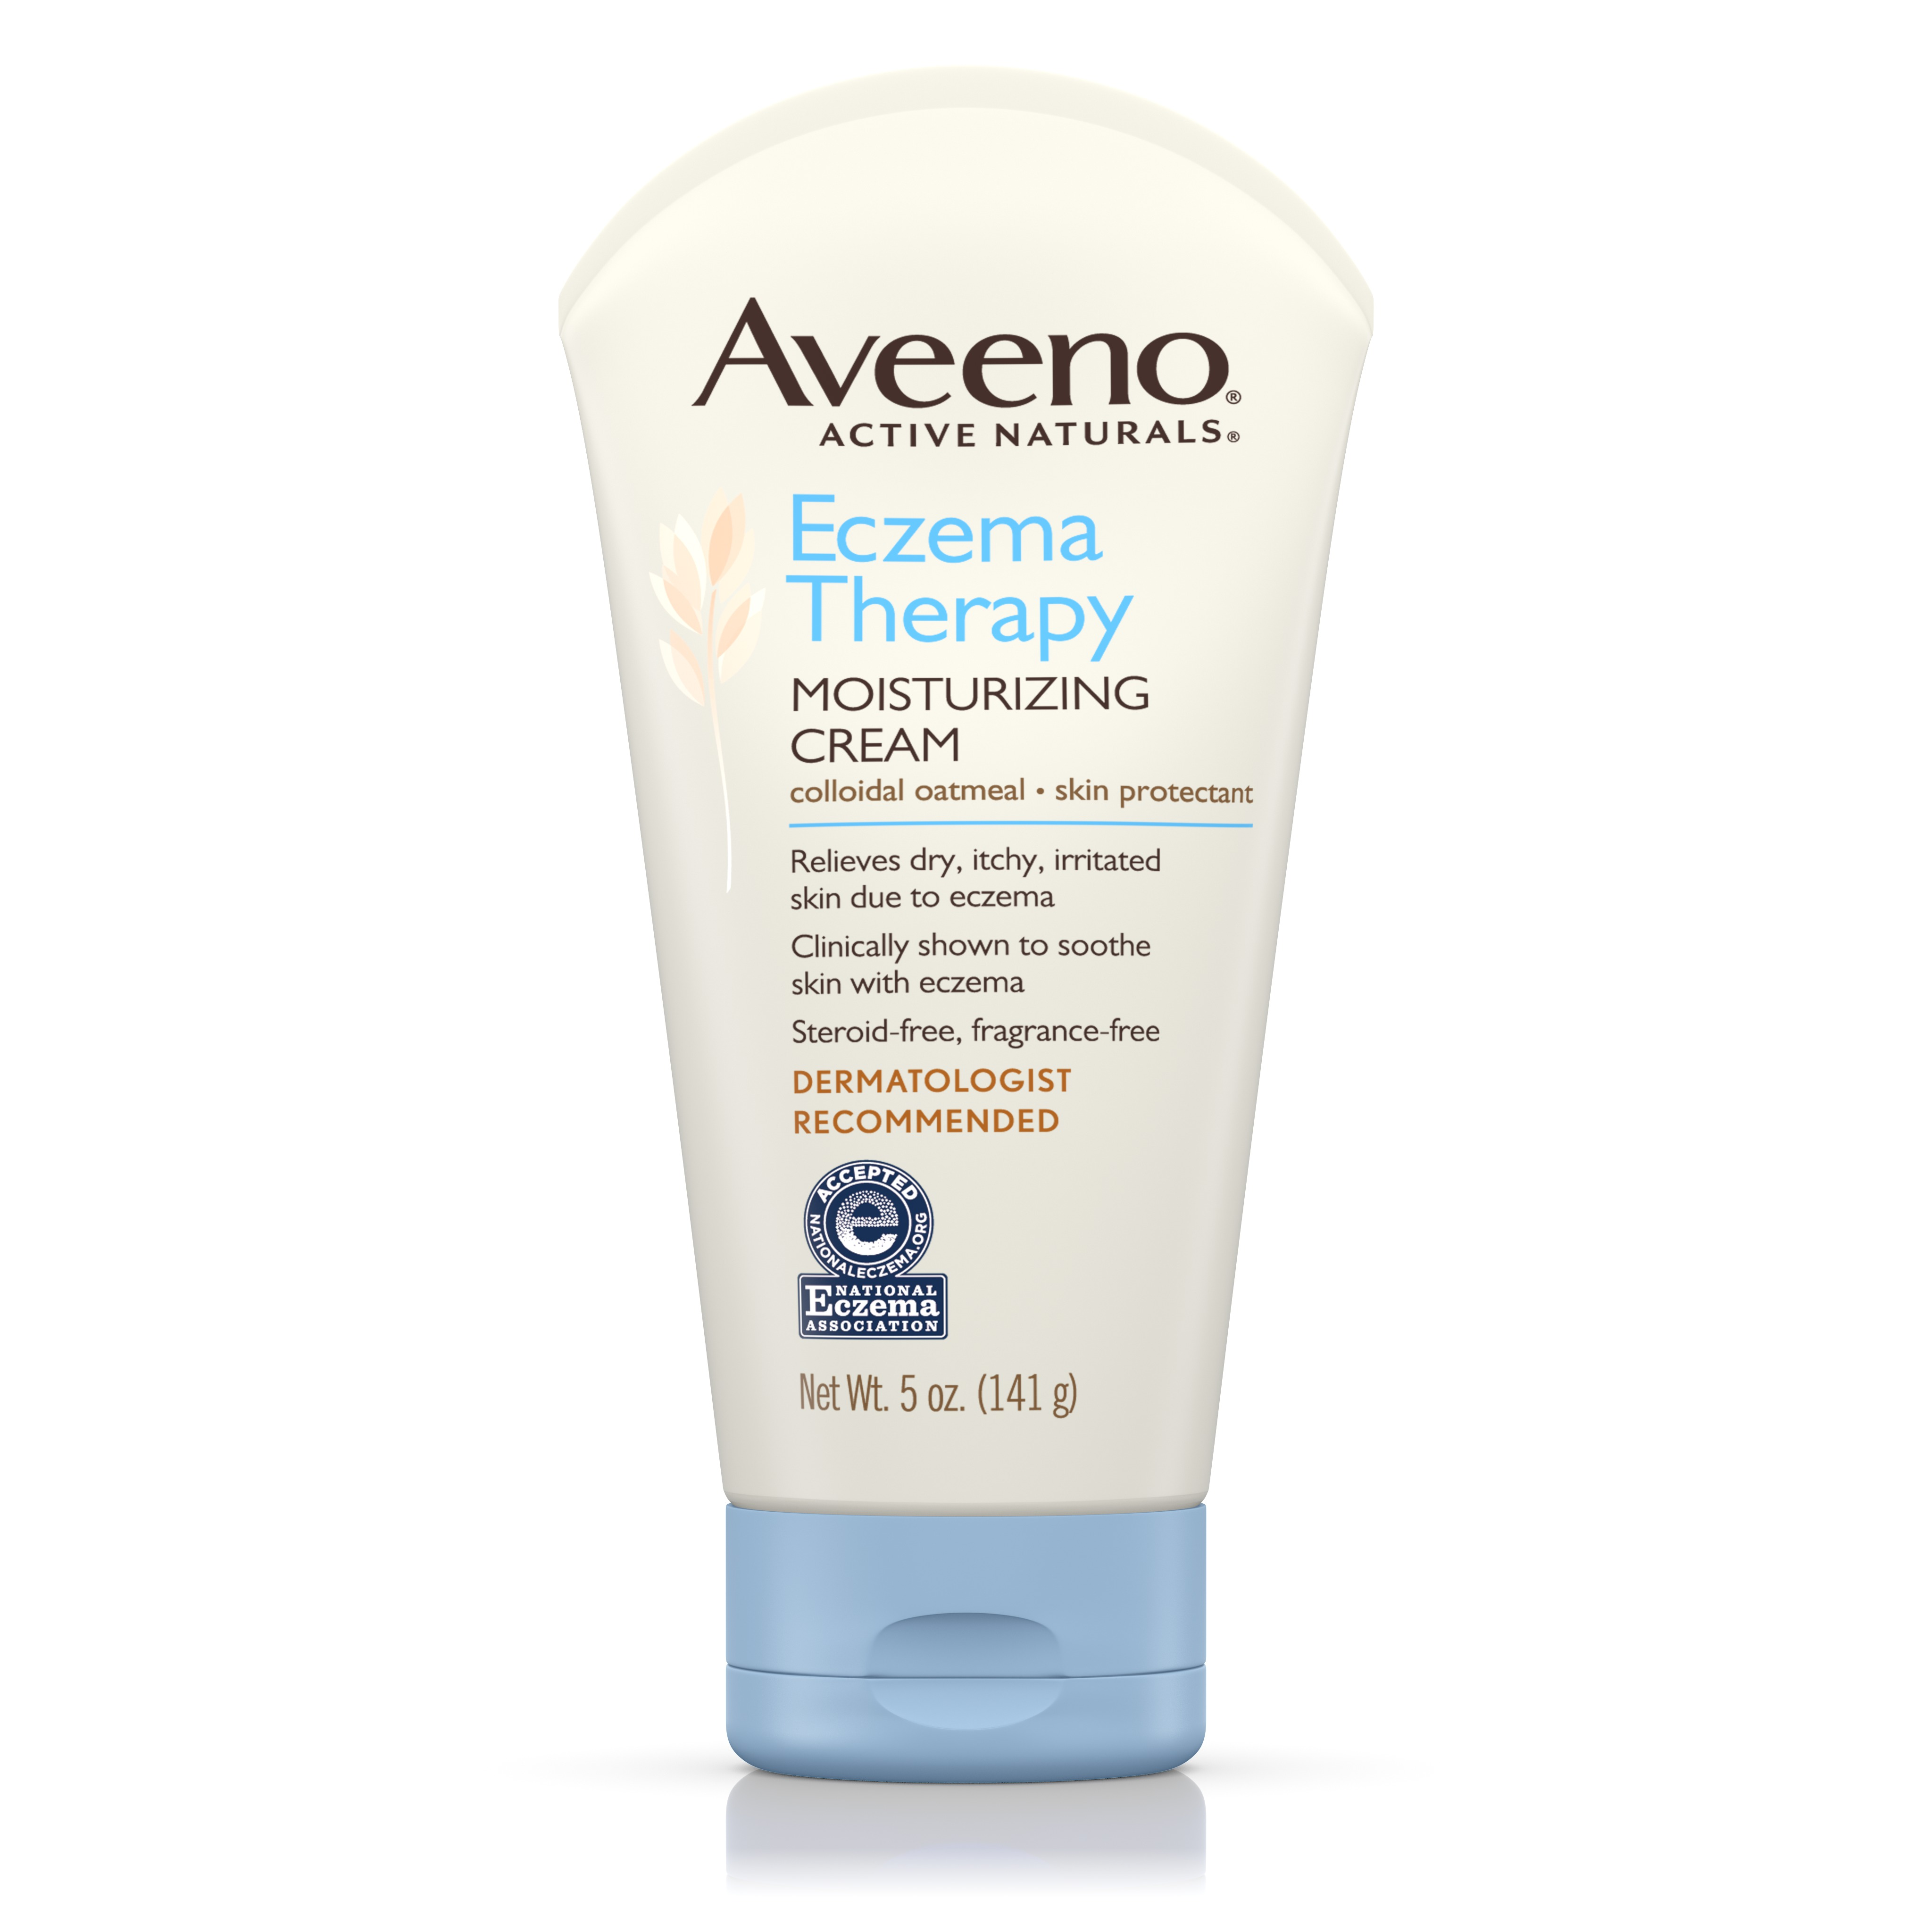 Aveeno Eczema Therapy Moisturizing Cream Relieves Dry Itchy Skin, 5 Oz - Walmart.com